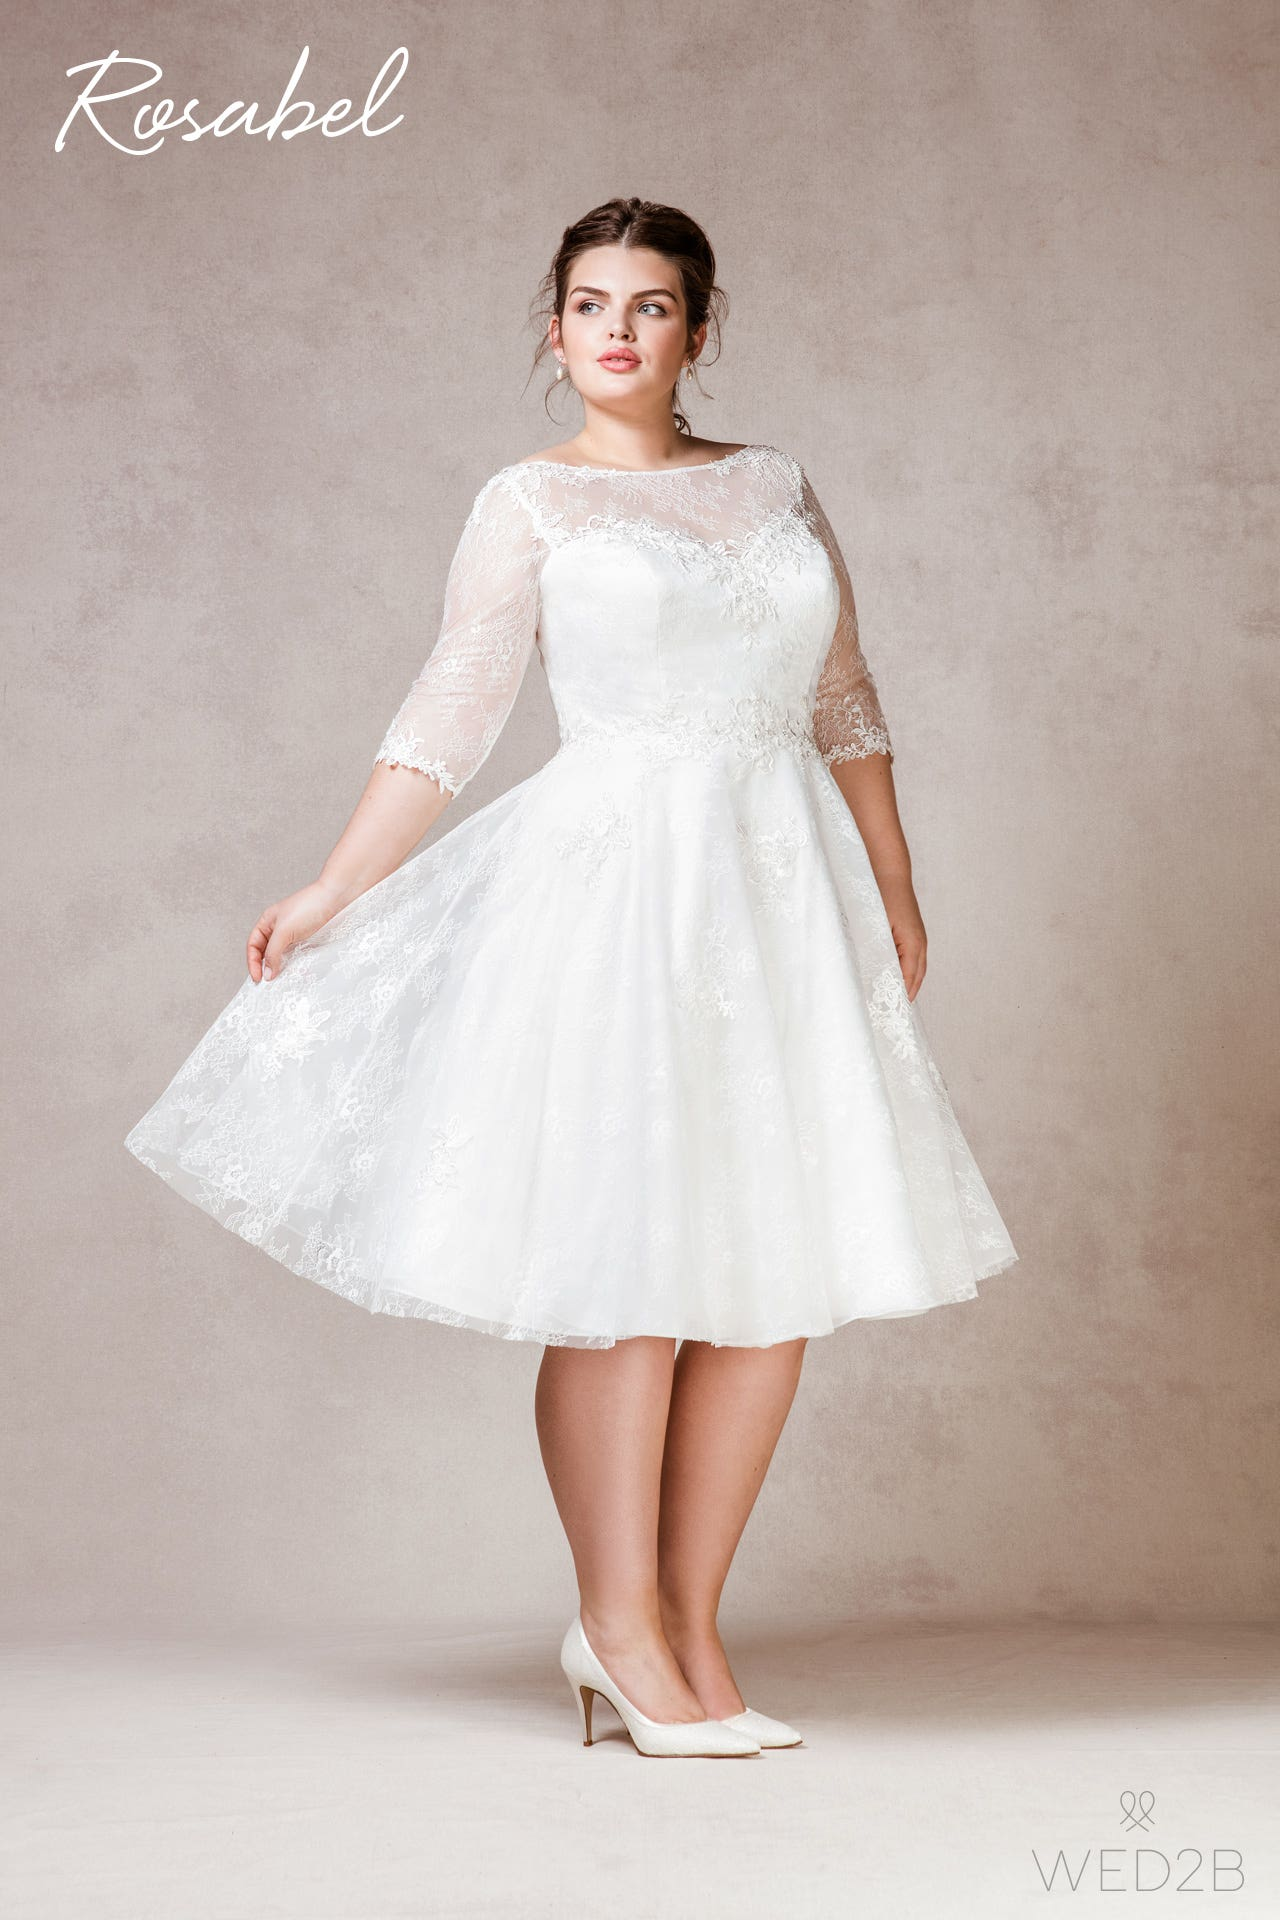 Rosabel plus size wedding dress